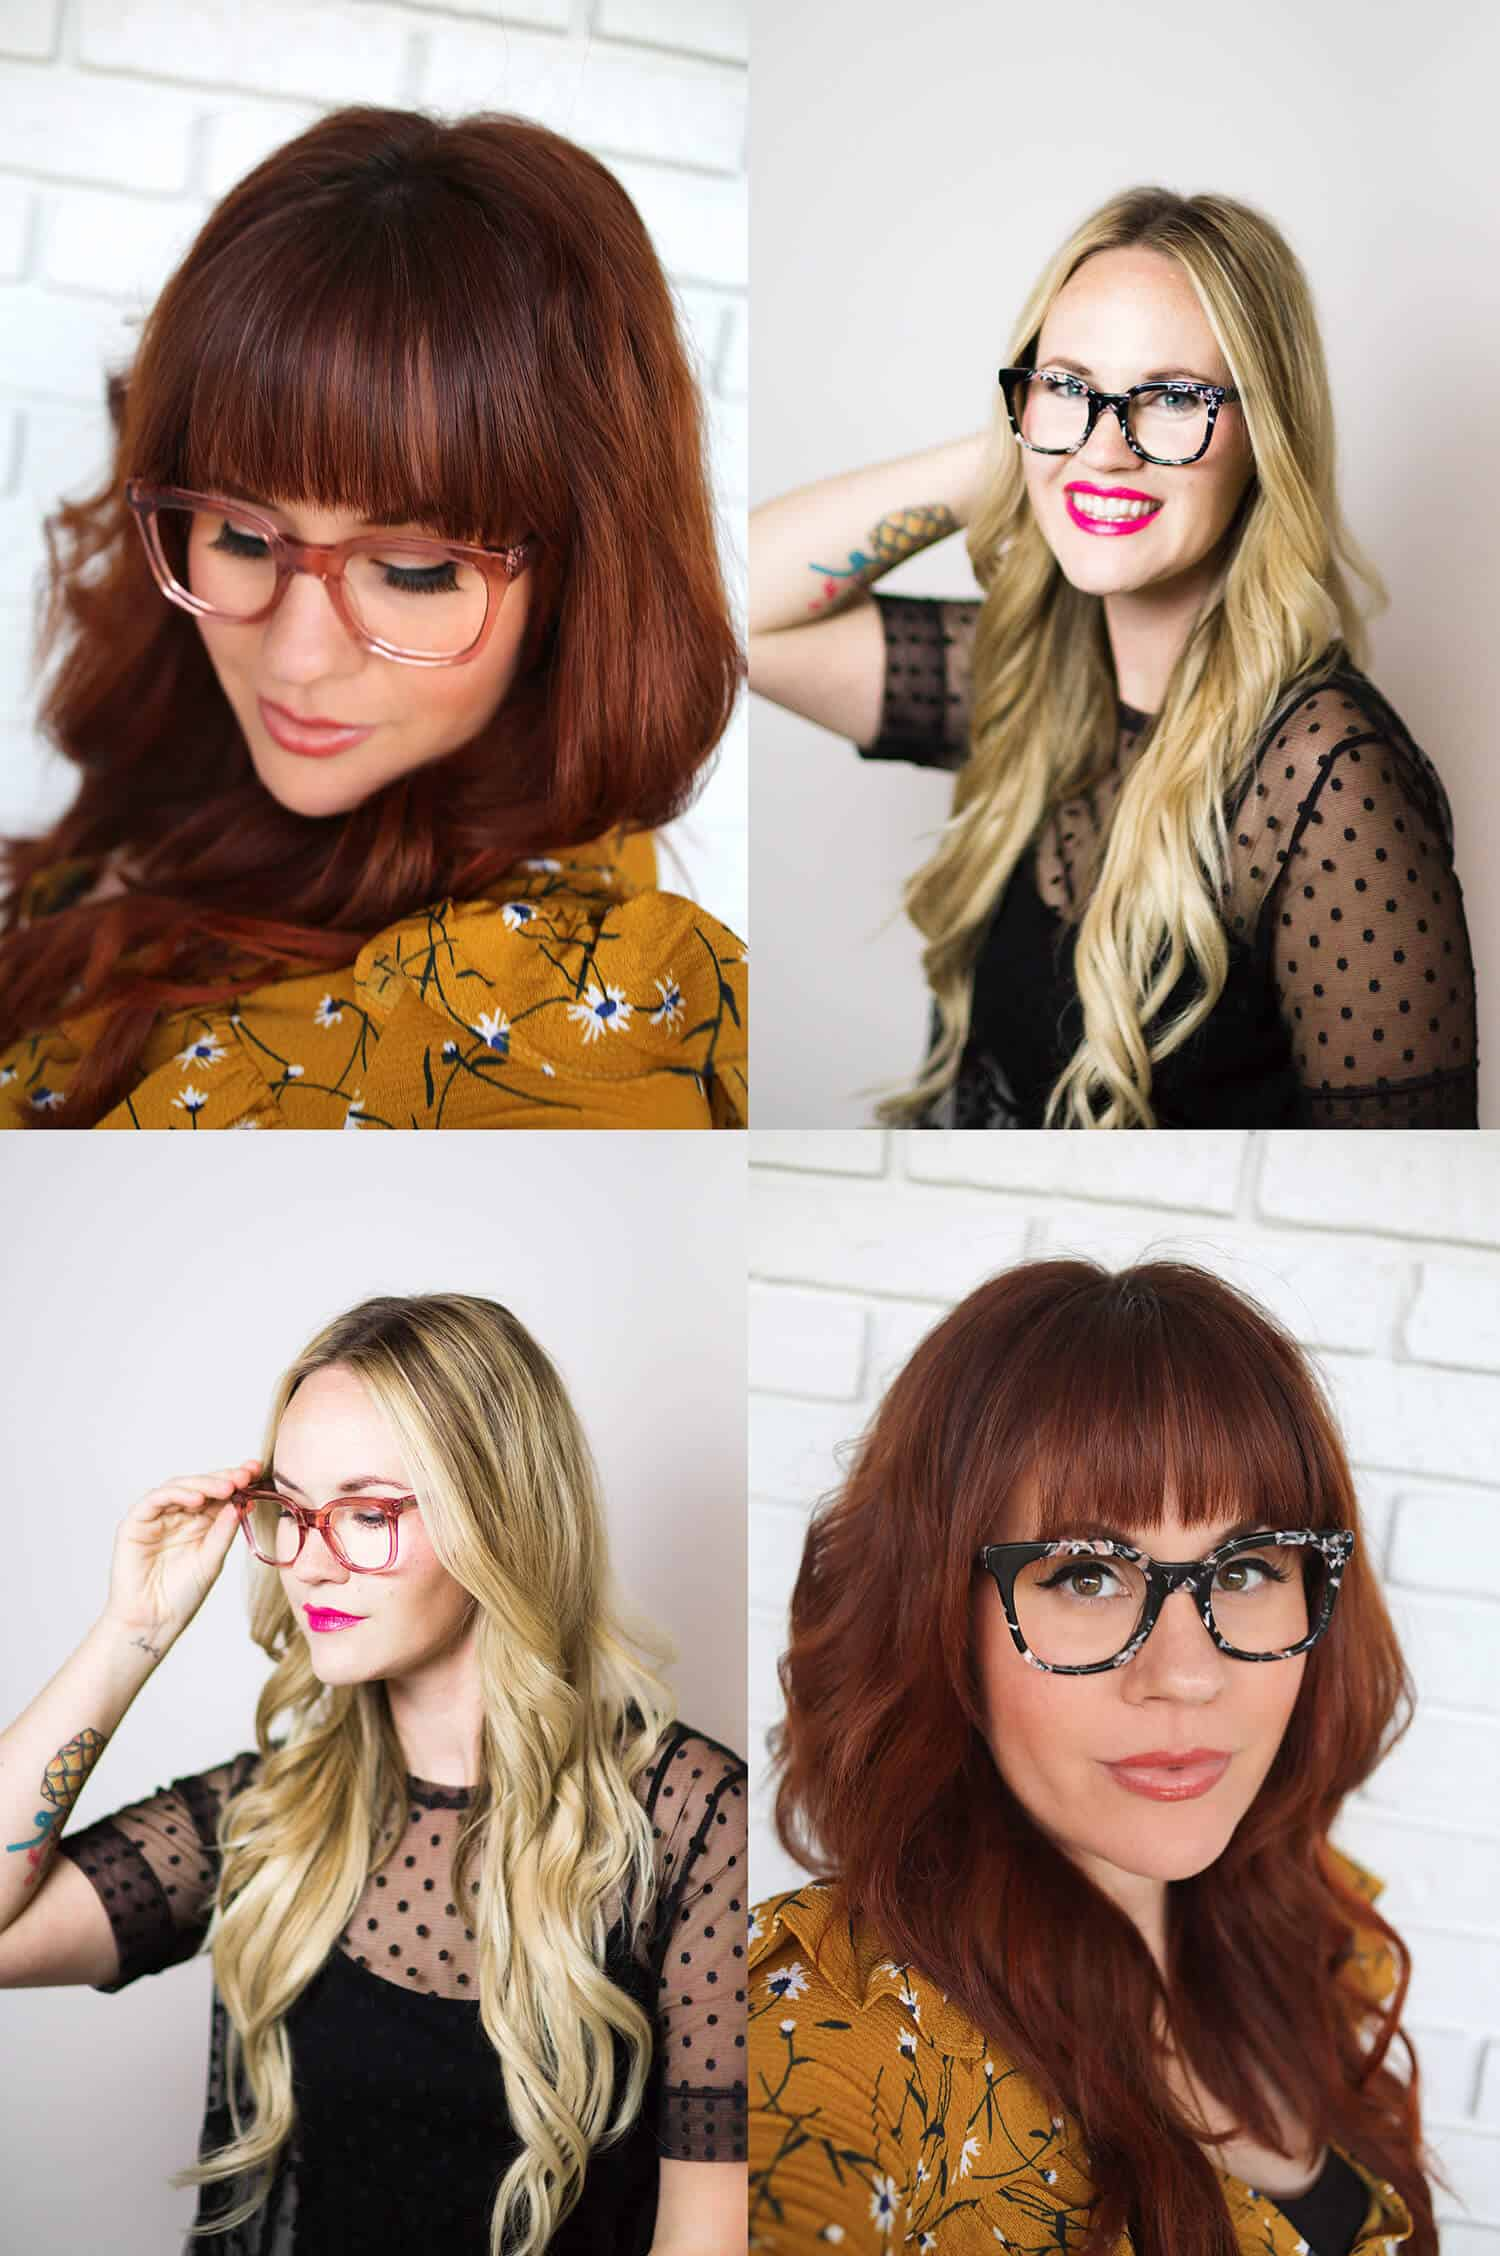 f3fae8e54cd2c We are beyond THRILLED to announce that our Jack   Norma frames from BonLook  are now available in two new colors!